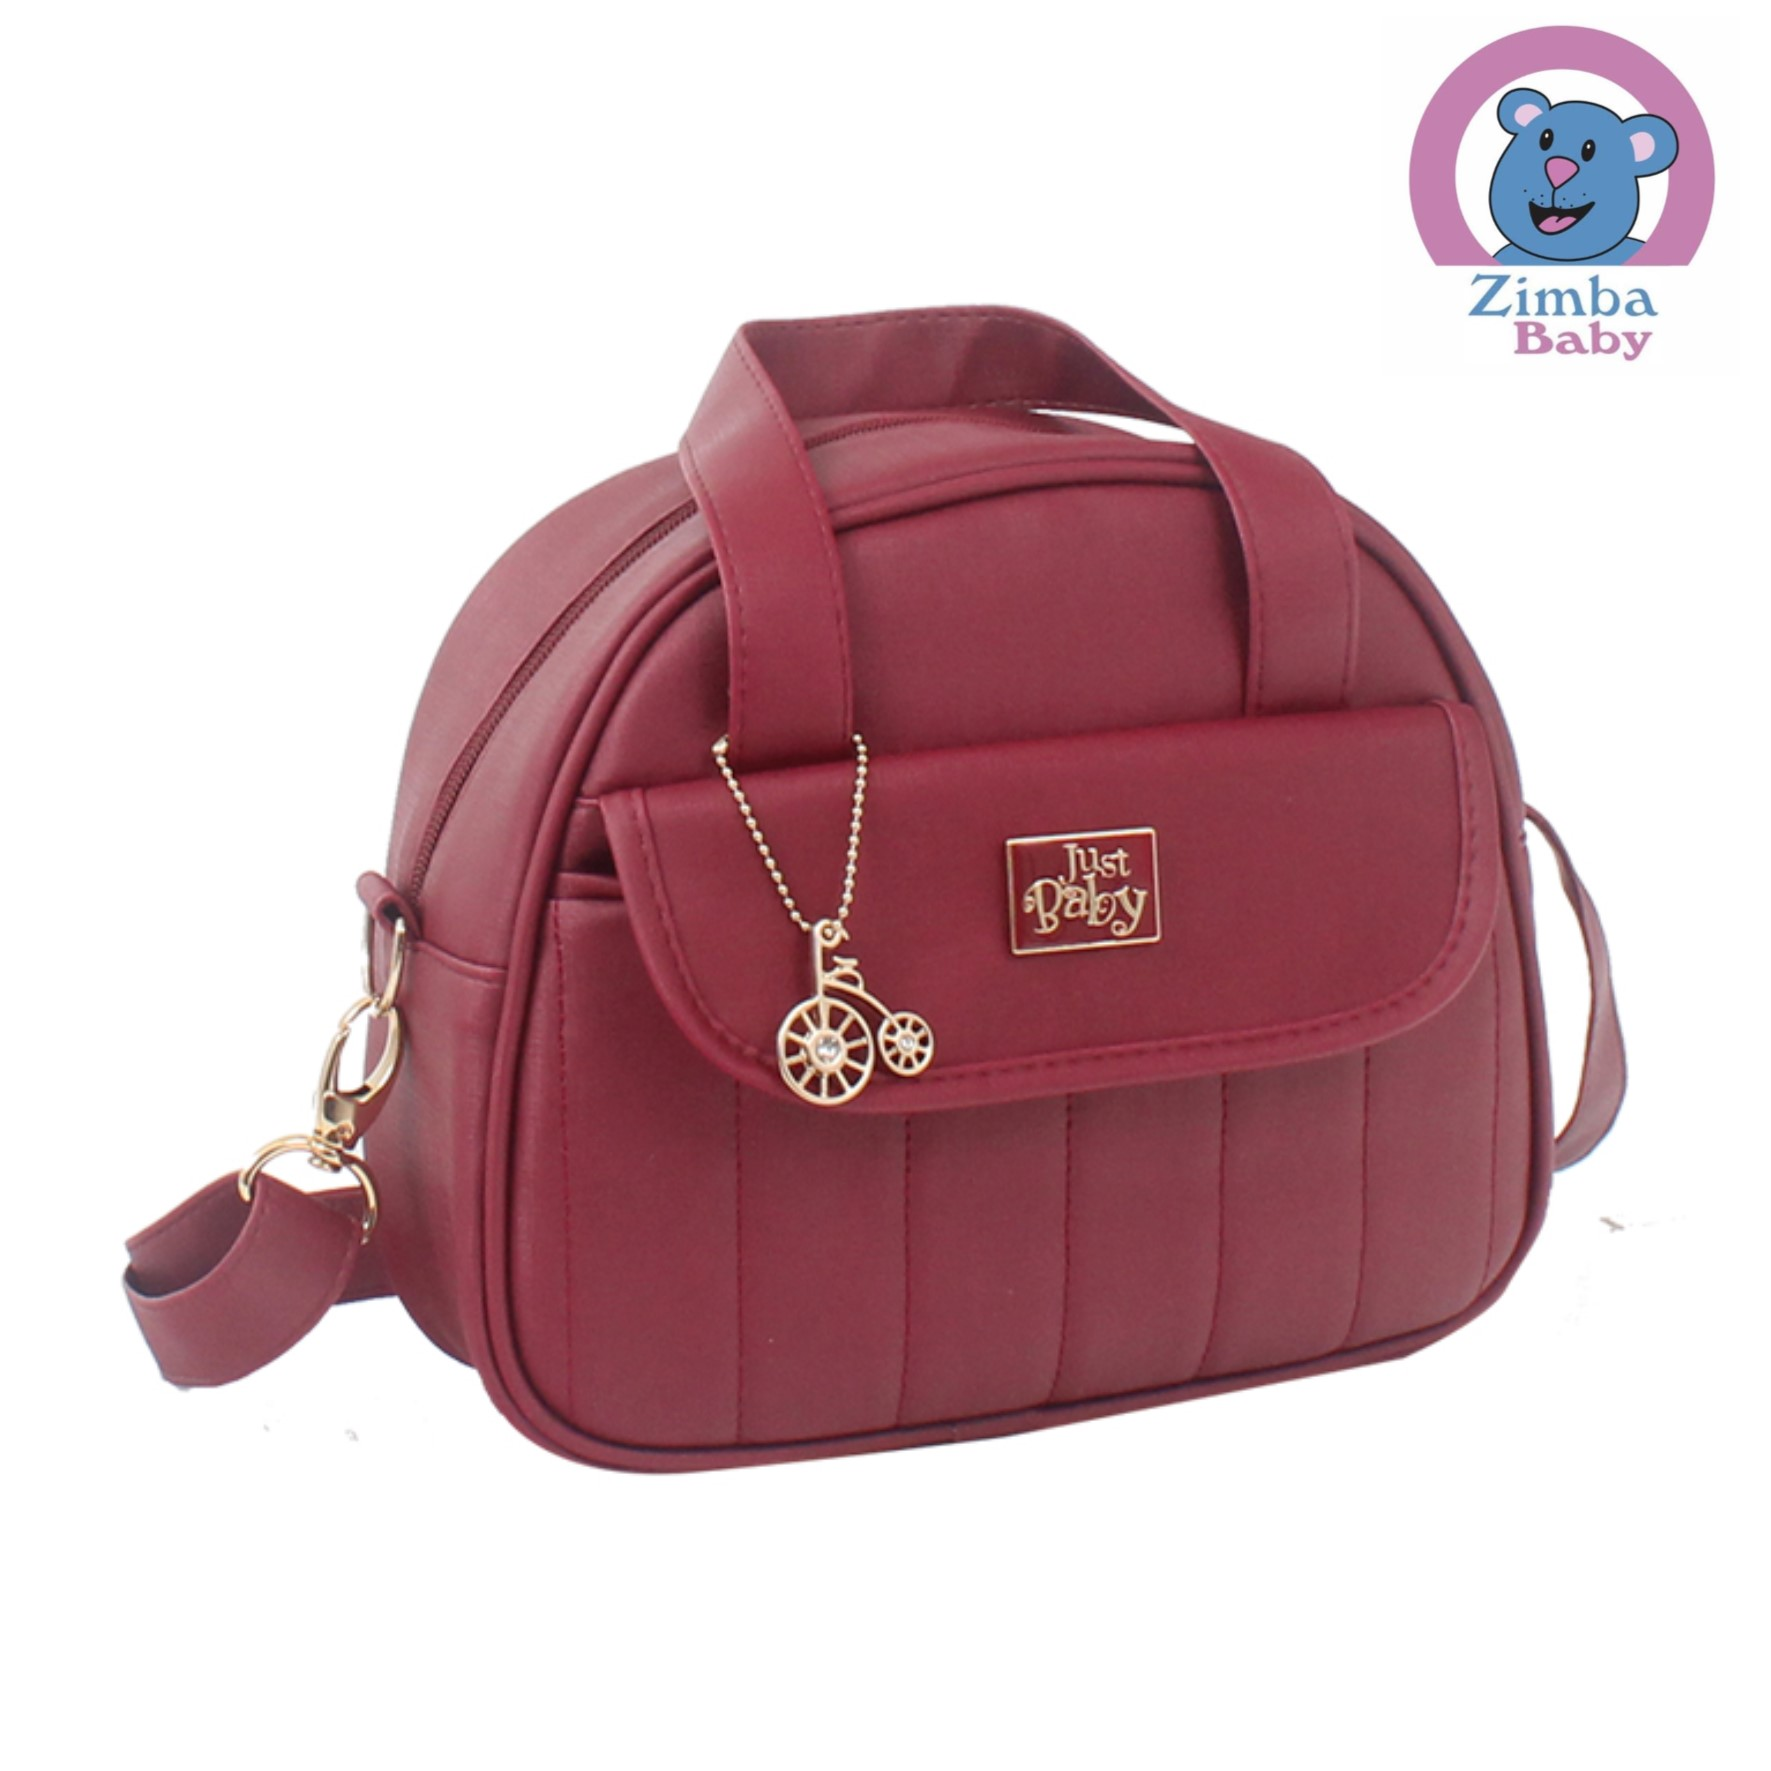 Bolsas e Malas Just Baby Copenhague Bordo